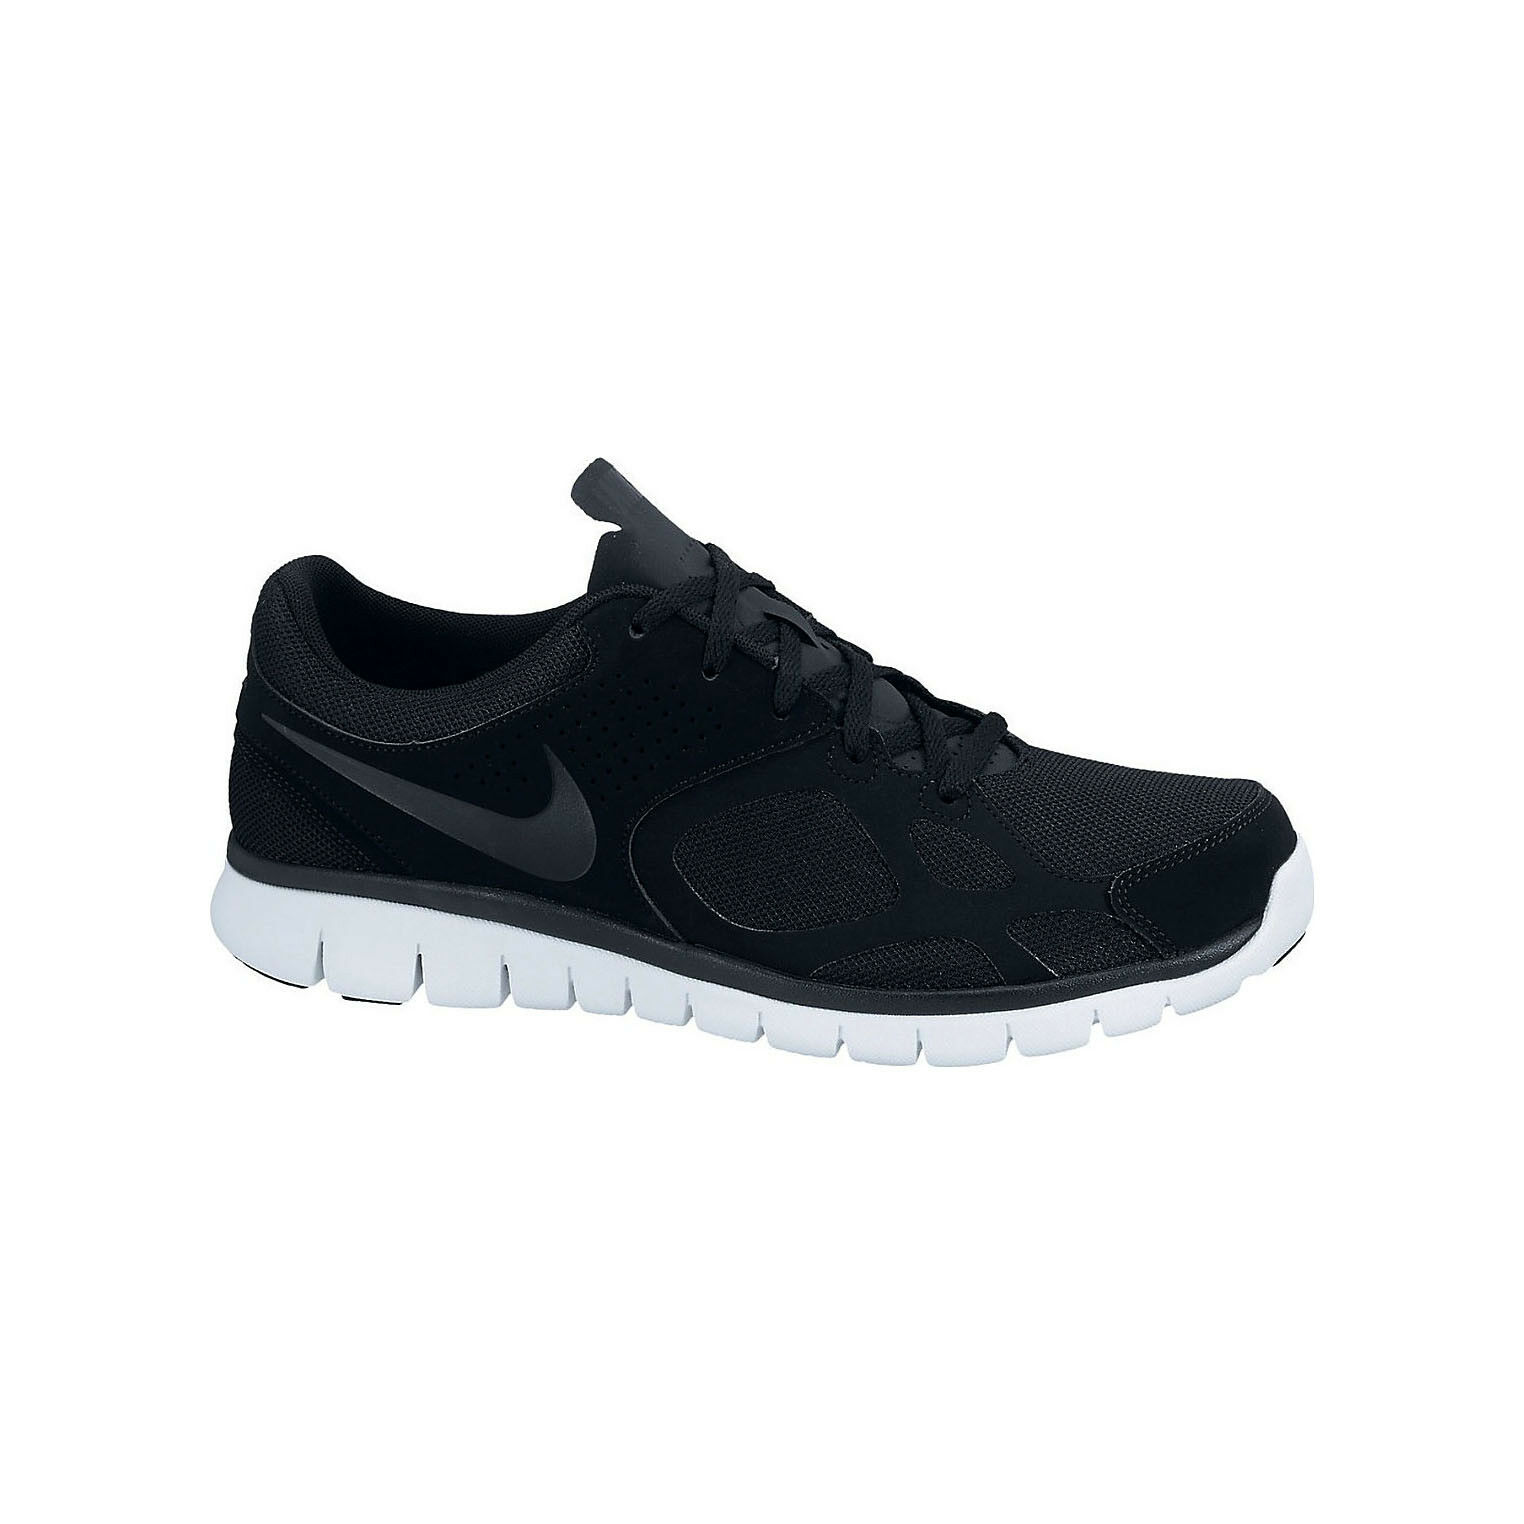 the latest 9038e 623f6 New Original Nike Nike Nike Flex 2012 EXT Black White Running Shoes for Men  Trainers NIB